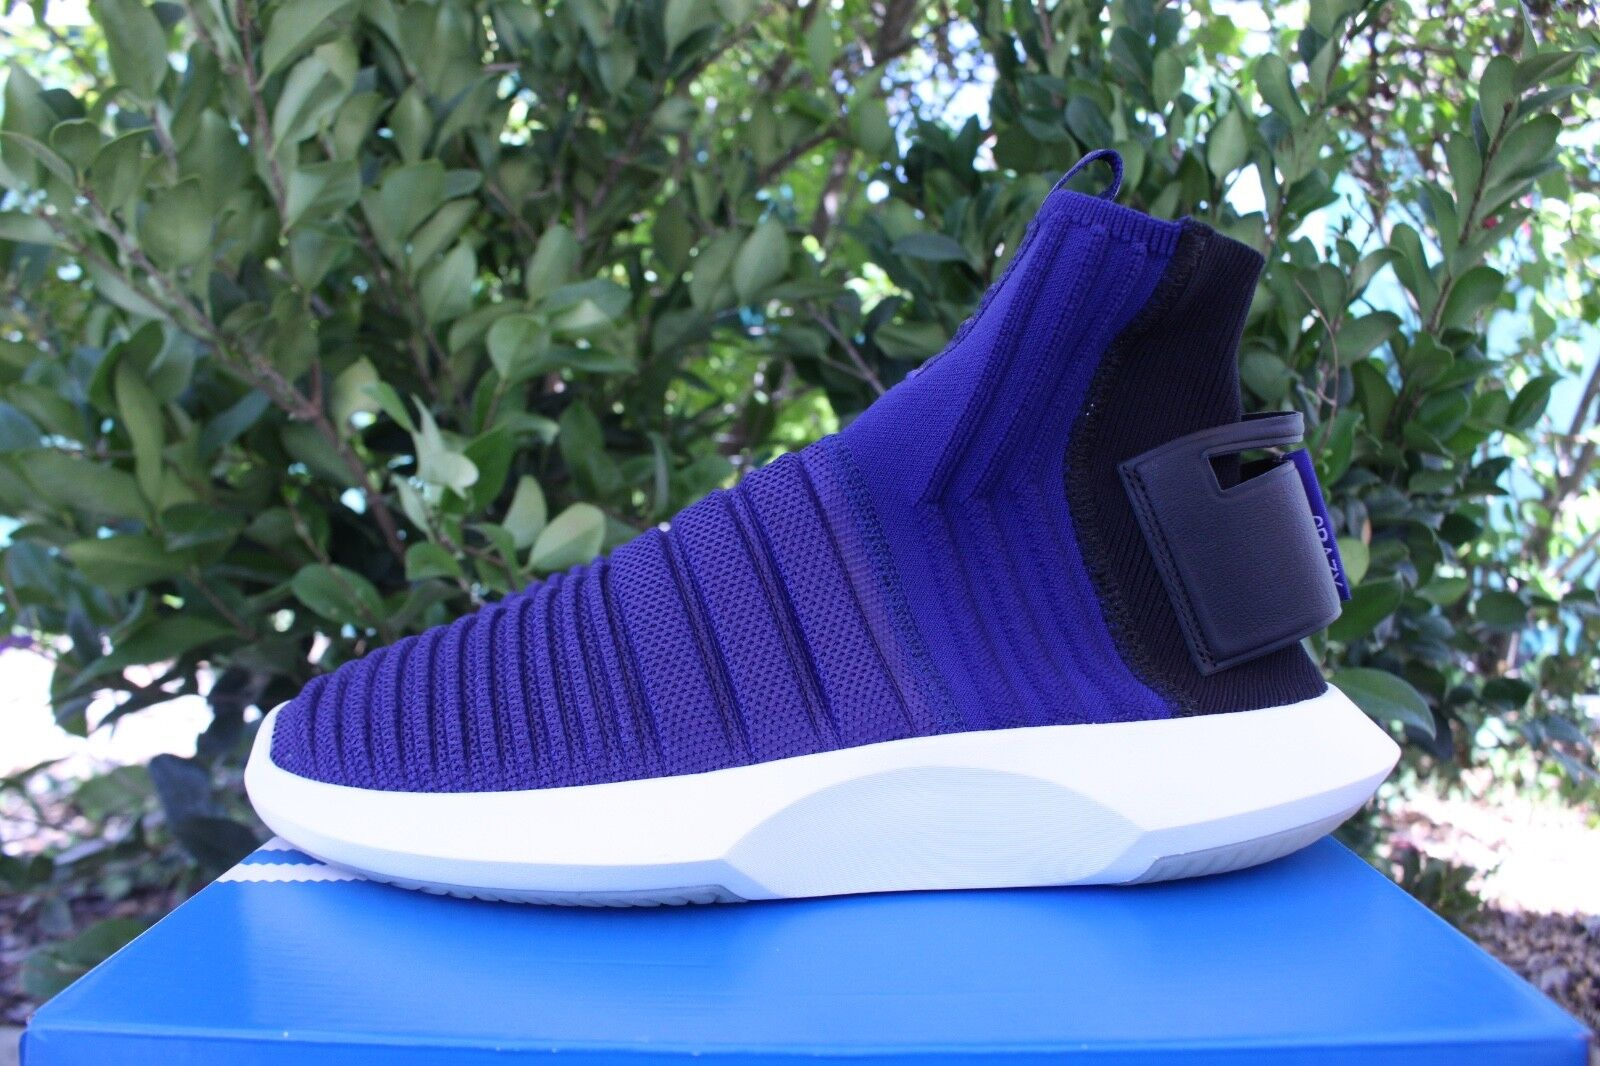 ADIDAS CRAZY 1 ADV SOCK PK SZ 12 PRIMEKNIT REAL PURPLE CORE BLACK CQ1011